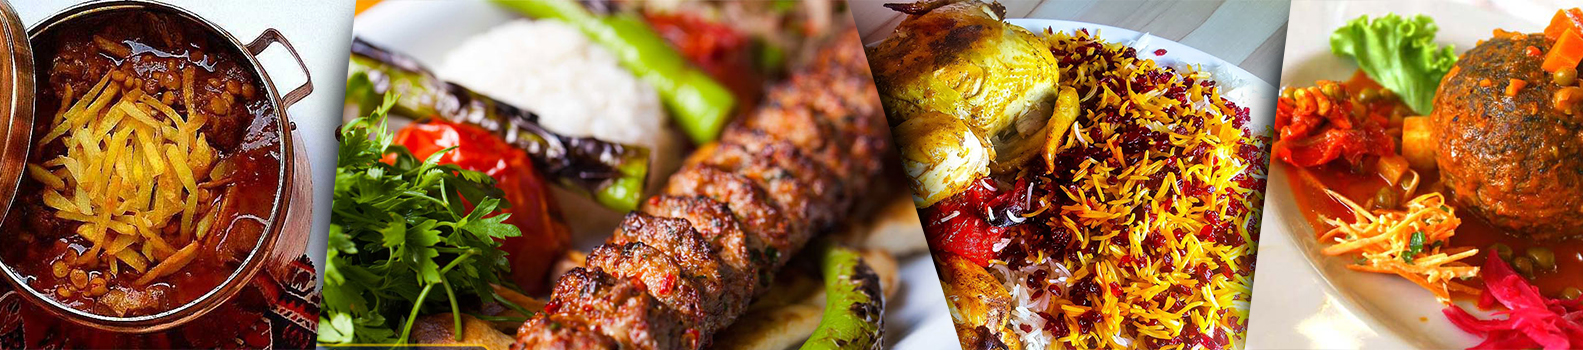 Persian cuisine,Iranian Food